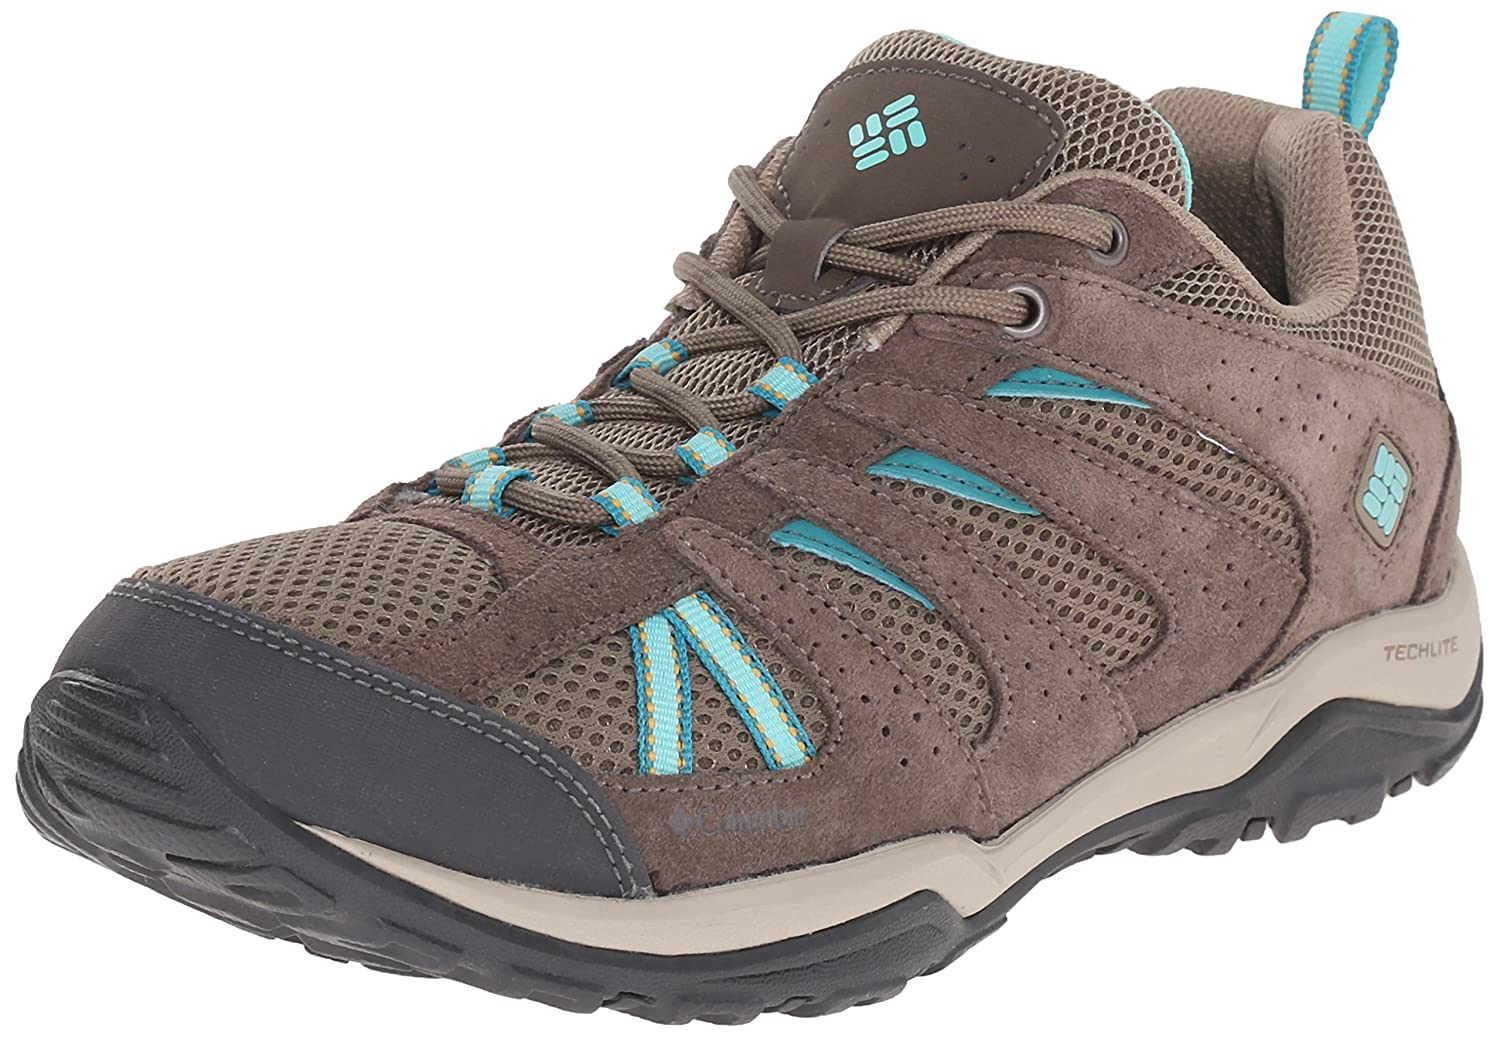 Columbia Women's Dakota Drifter Trail Shoe B01015KRJ2 6.5 B(M) US|Pebble, Dolphin